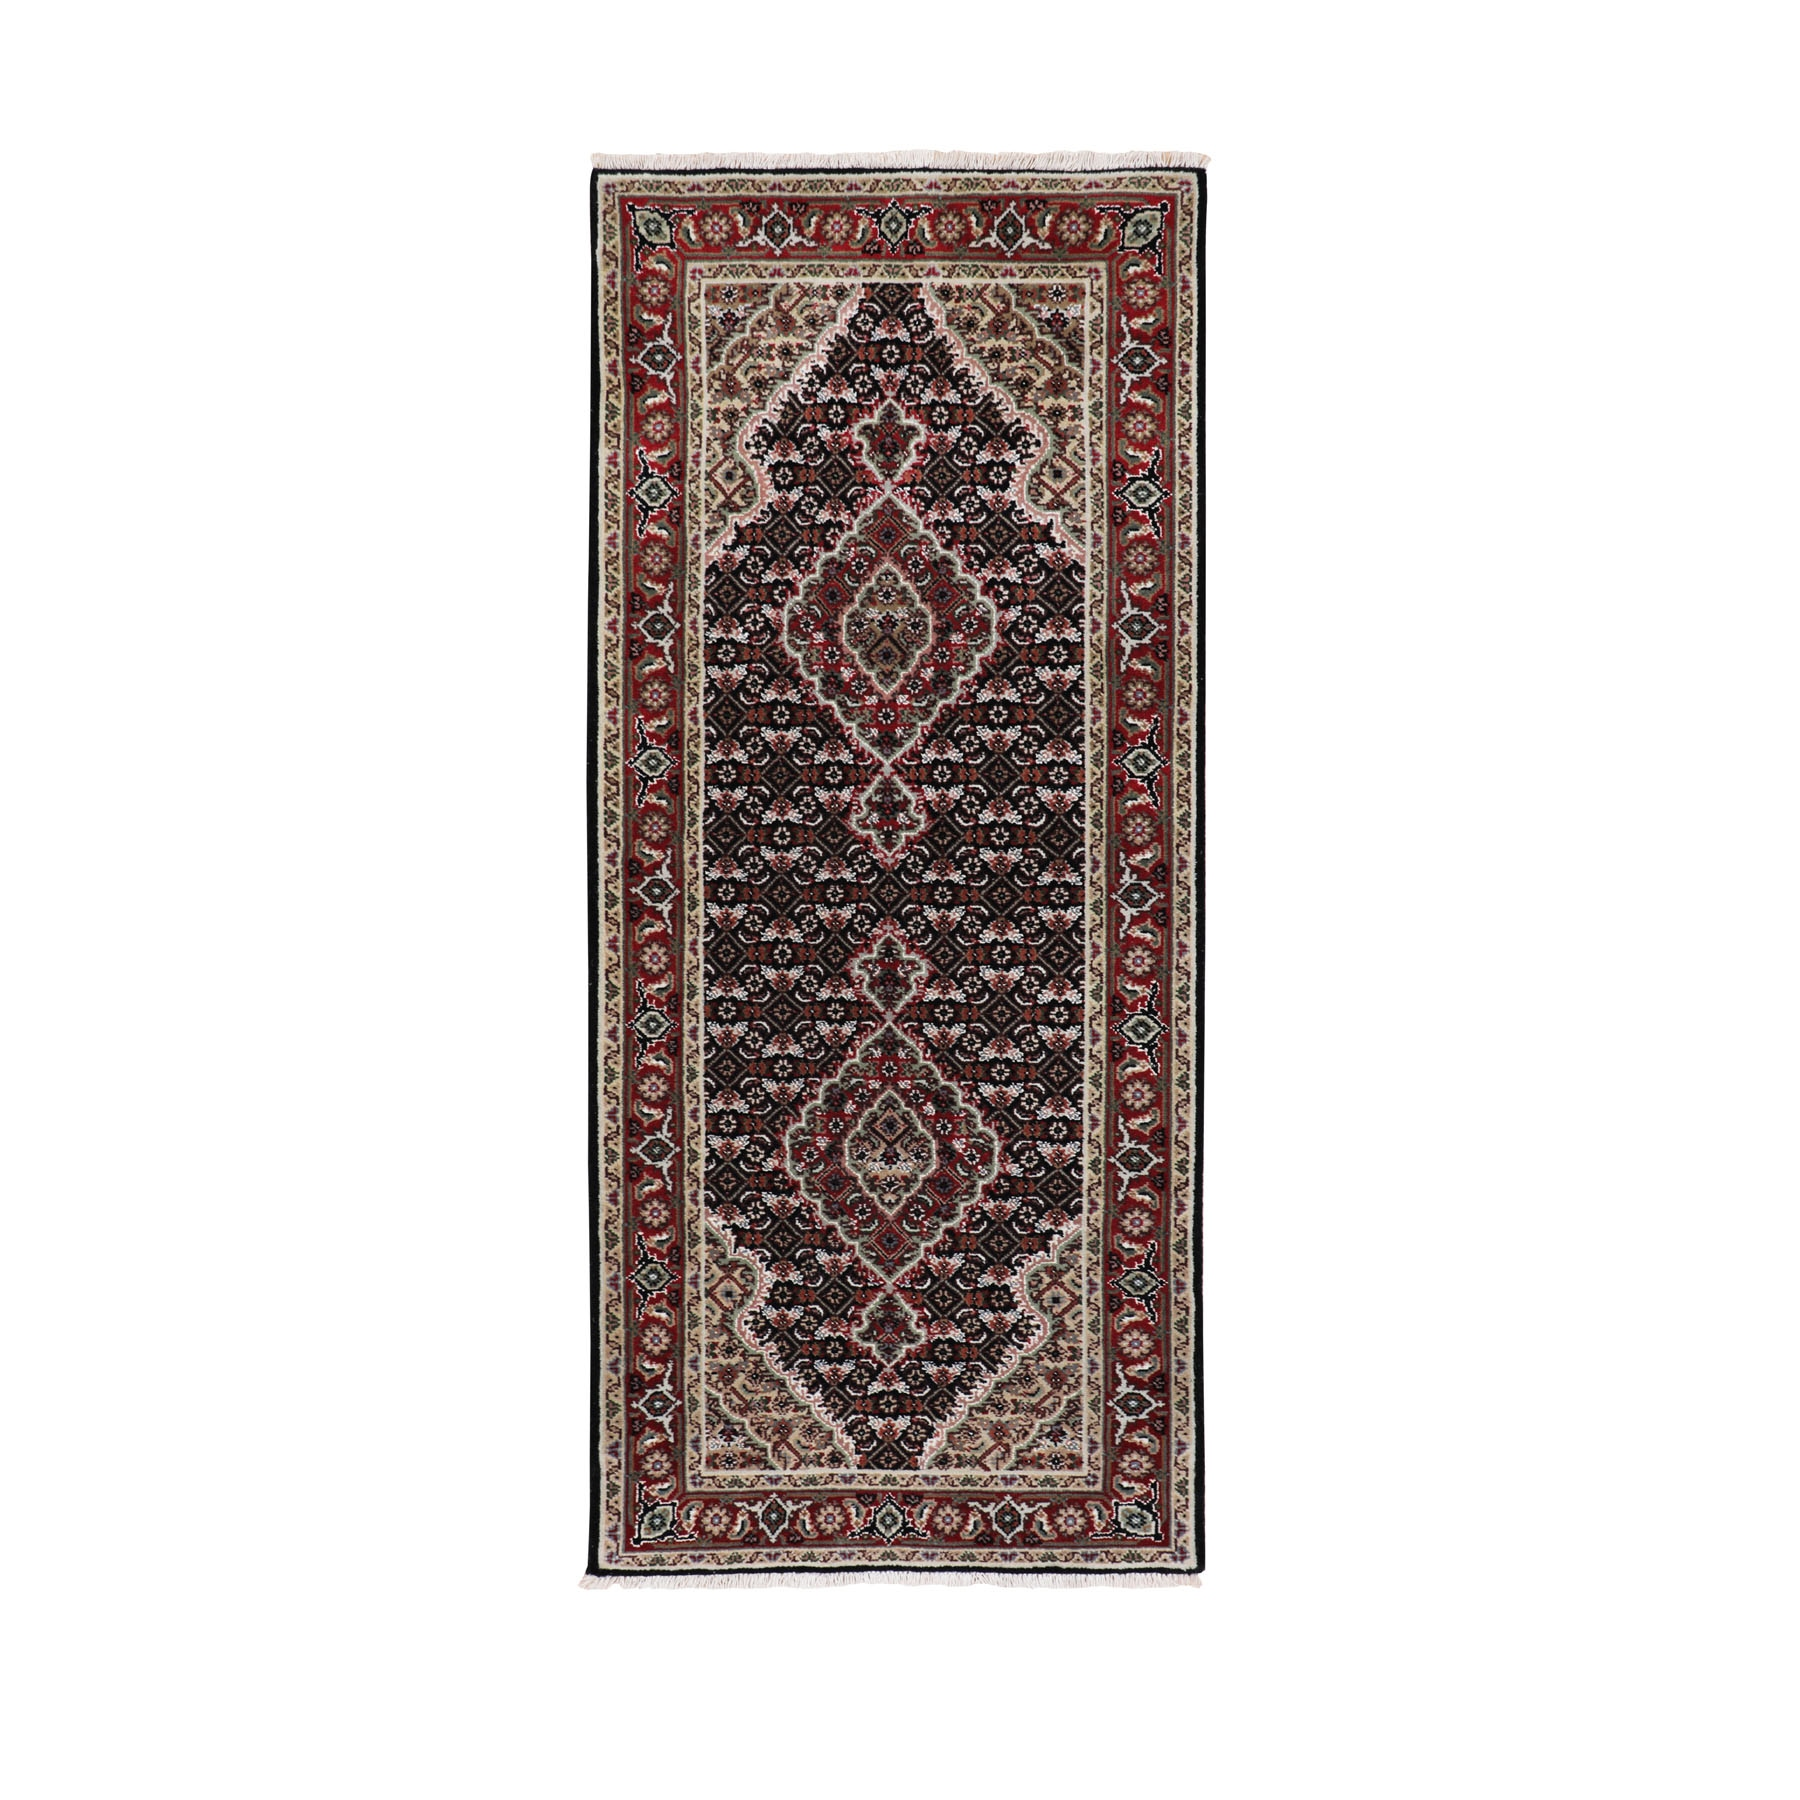 Pirniakan Collection Hand Knotted Black Rug No: 01116654